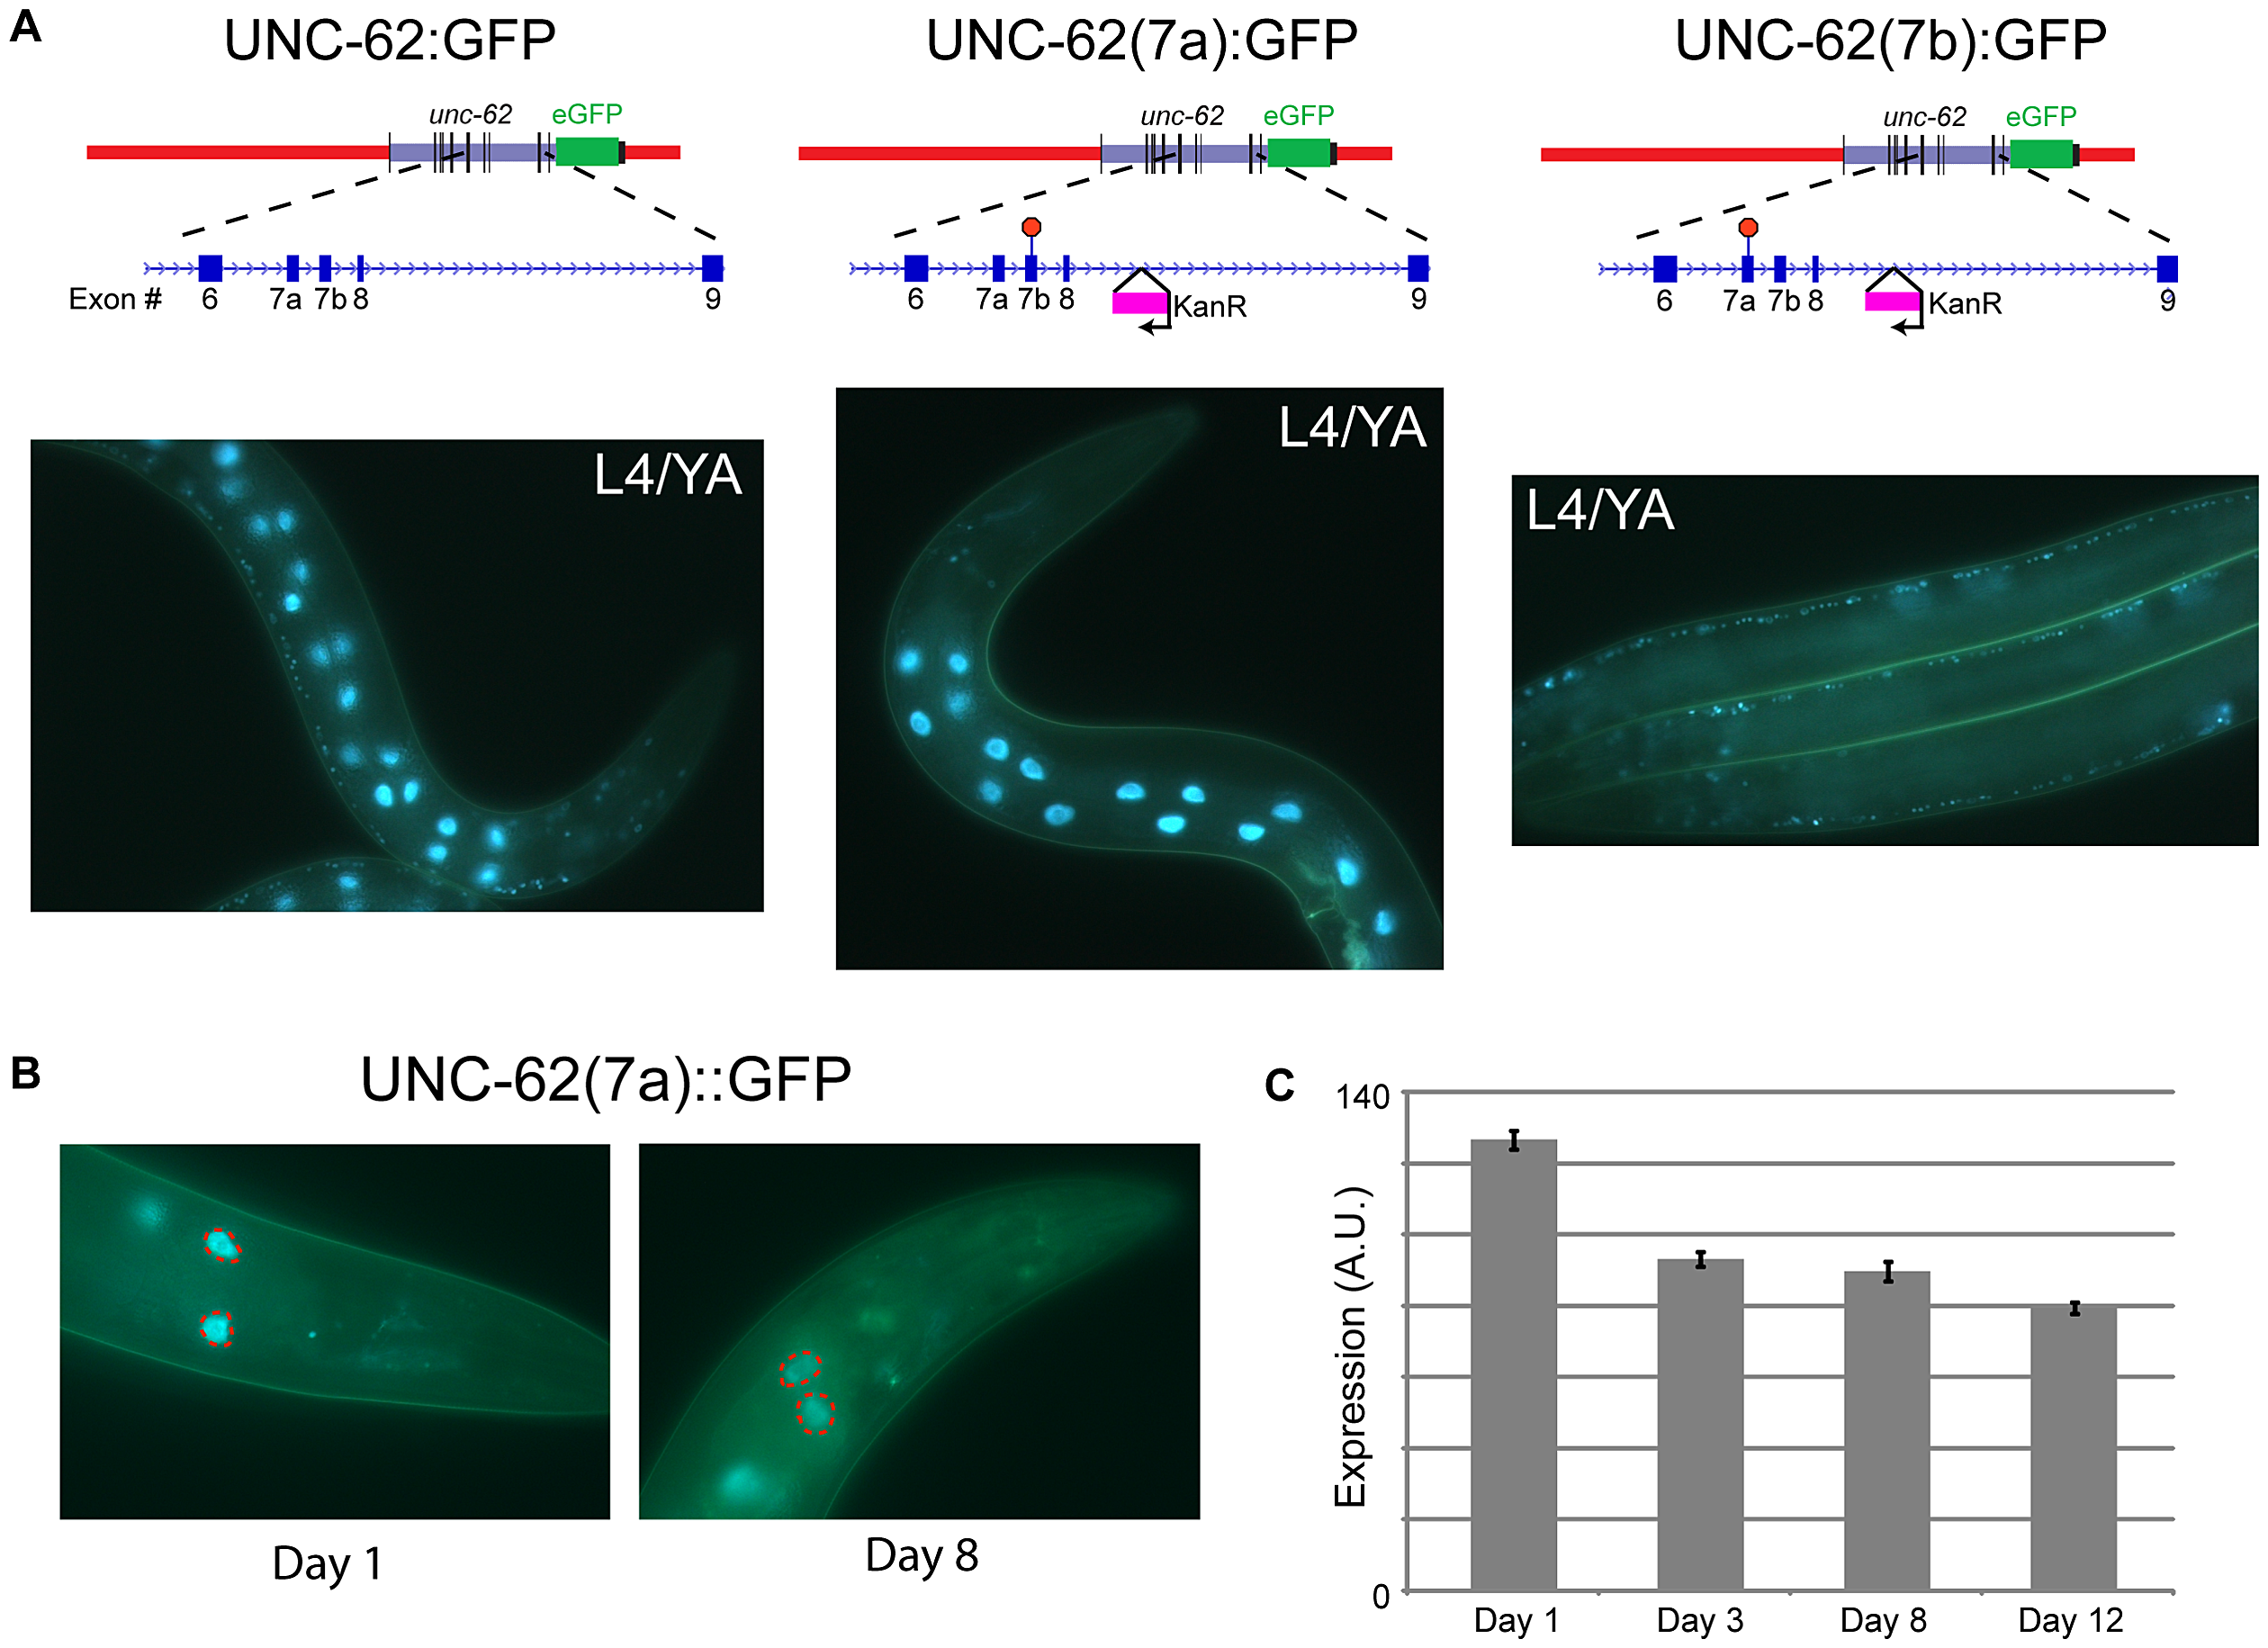 Alternative splicing of UNC-62 generates intestine-specific <i>unc-62(7a)</i> and neuronal/hypodermal-specific <i>unc-62(7b)</i> isoforms.